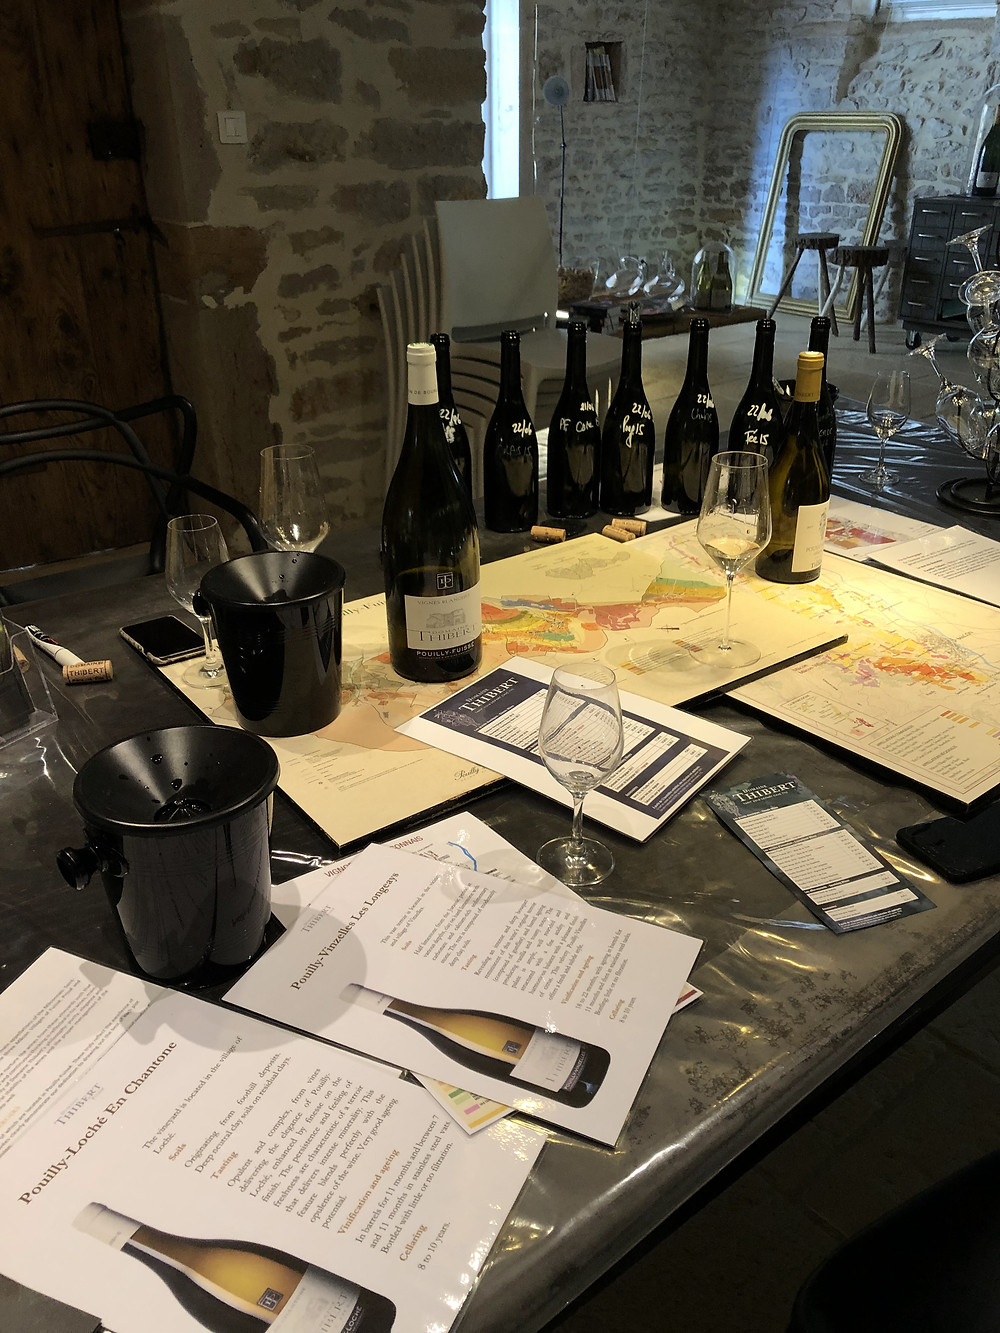 Pouilly-Fuisse winetasting in Fuisse village at Domaine Thibert Pere et Fils discussing the terroirs and climats of Pouilly Fuisse